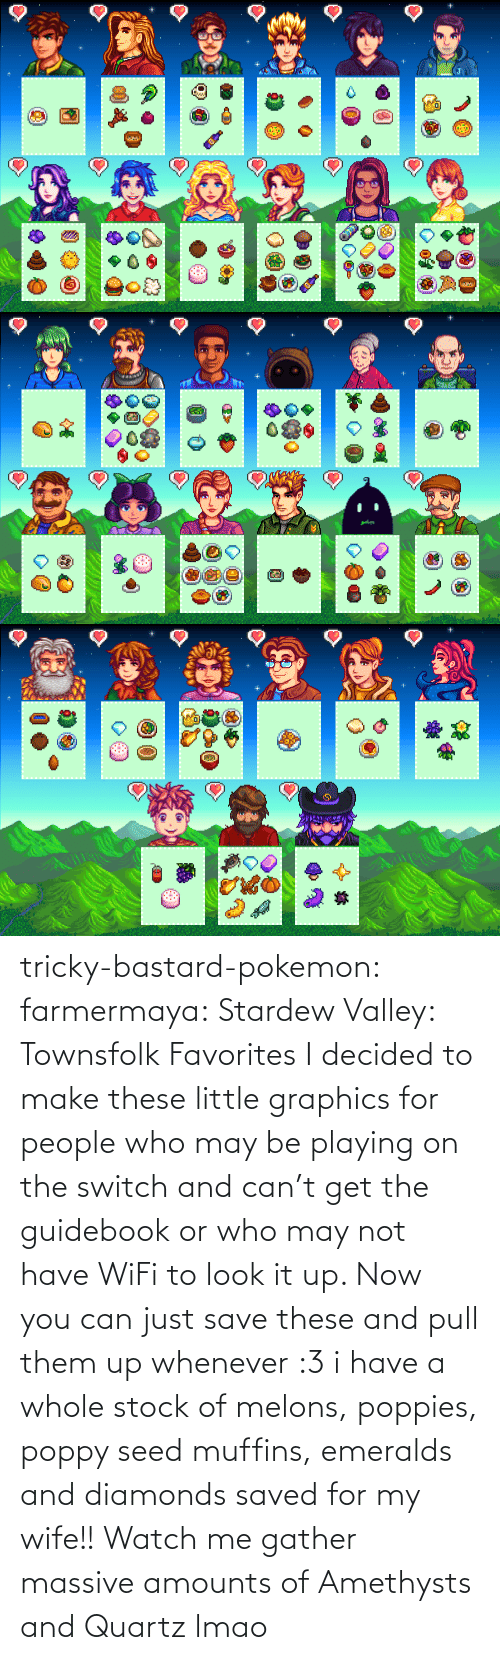 saved: tricky-bastard-pokemon:  farmermaya: Stardew Valley: Townsfolk Favorites  I decided to make these little graphics for people who may be playing on the switch and can't get the guidebook or who may not have WiFi to look it up. Now you can just save these and pull them up whenever :3   i have a whole stock of melons, poppies, poppy seed muffins, emeralds and diamonds saved for my wife!!    Watch me gather massive amounts of Amethysts and Quartz lmao